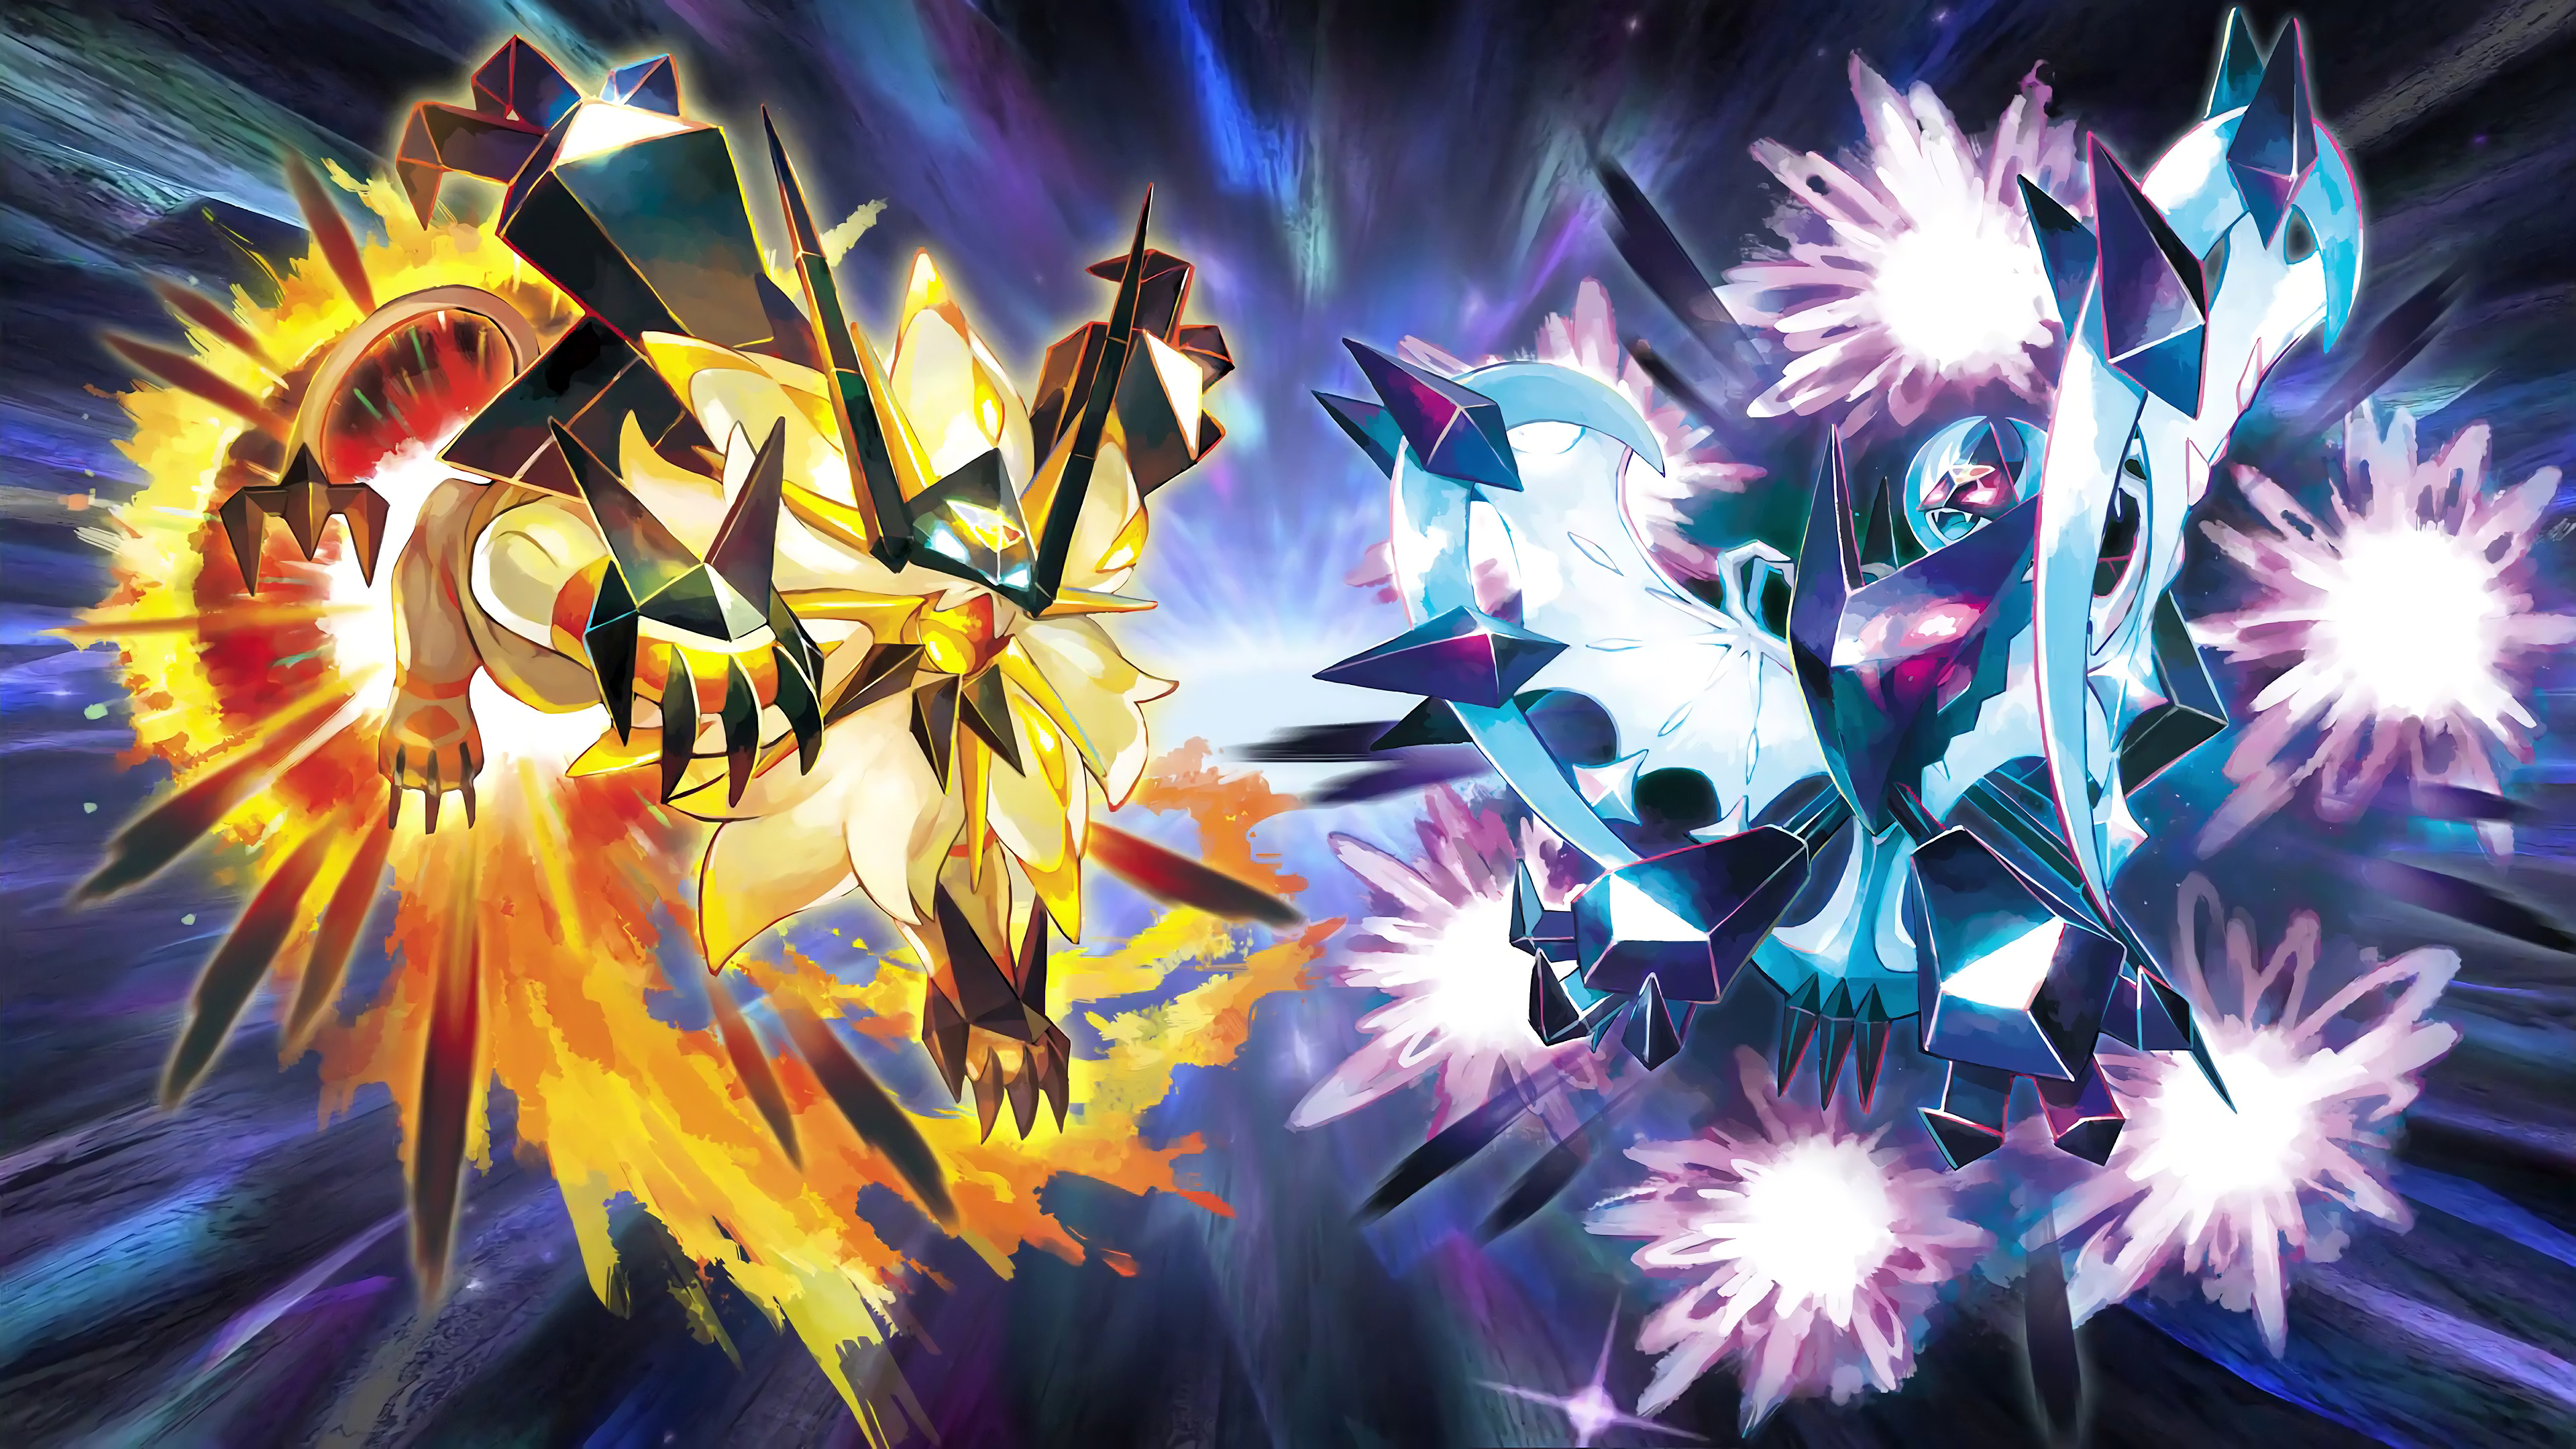 Wallpaper Of Pokemon 90 Pictures